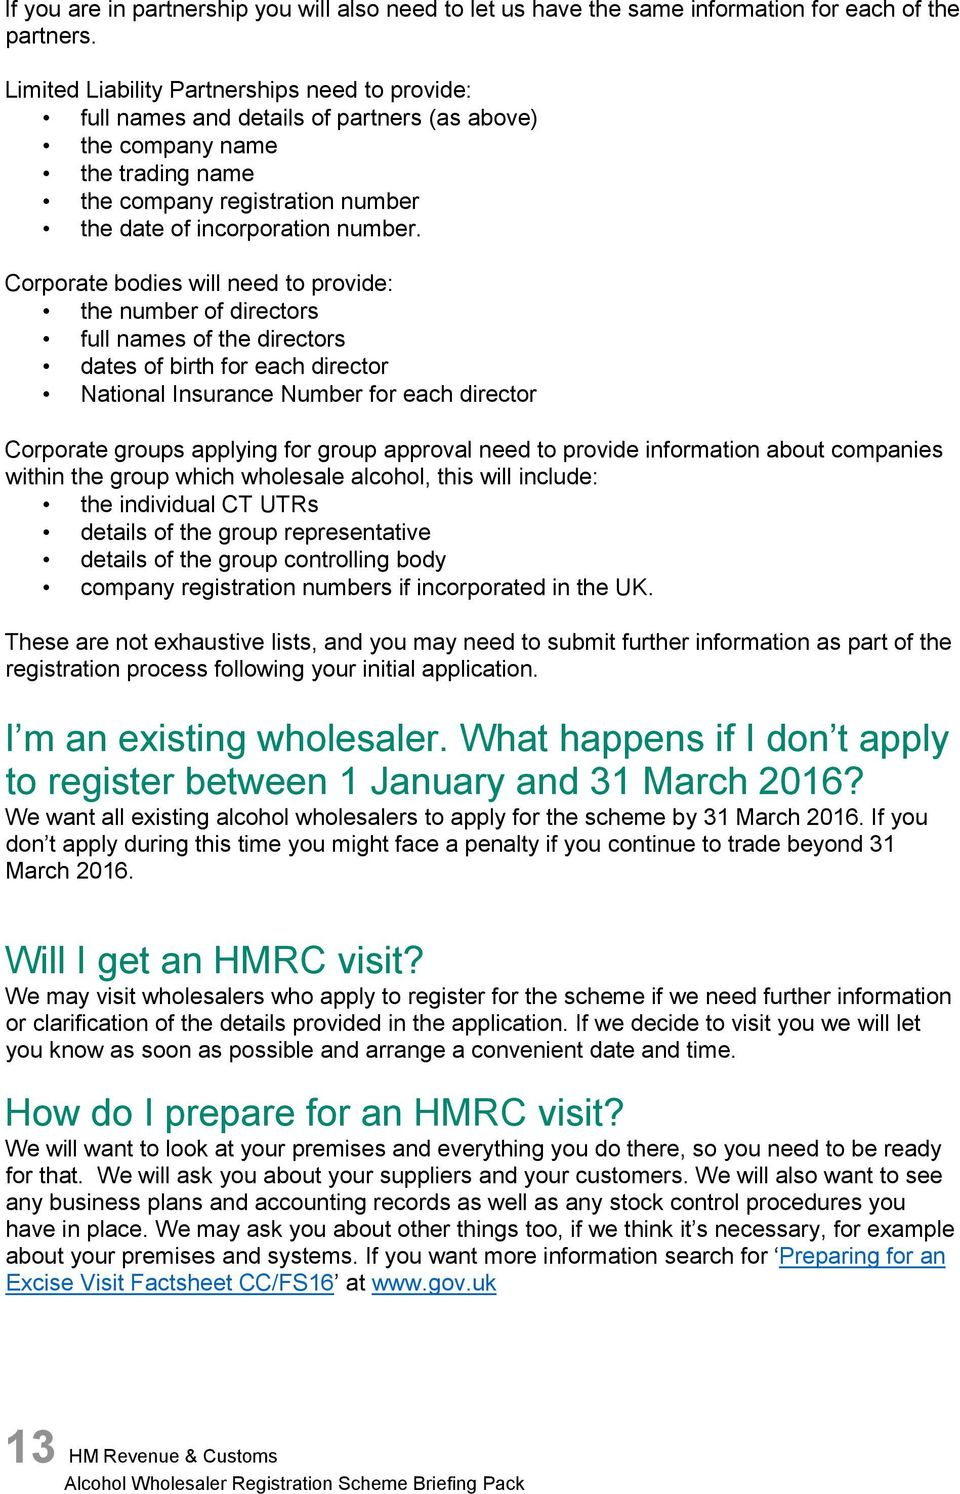 Alcohol Wholesaler Registration Scheme (AWRS) Briefing Pack